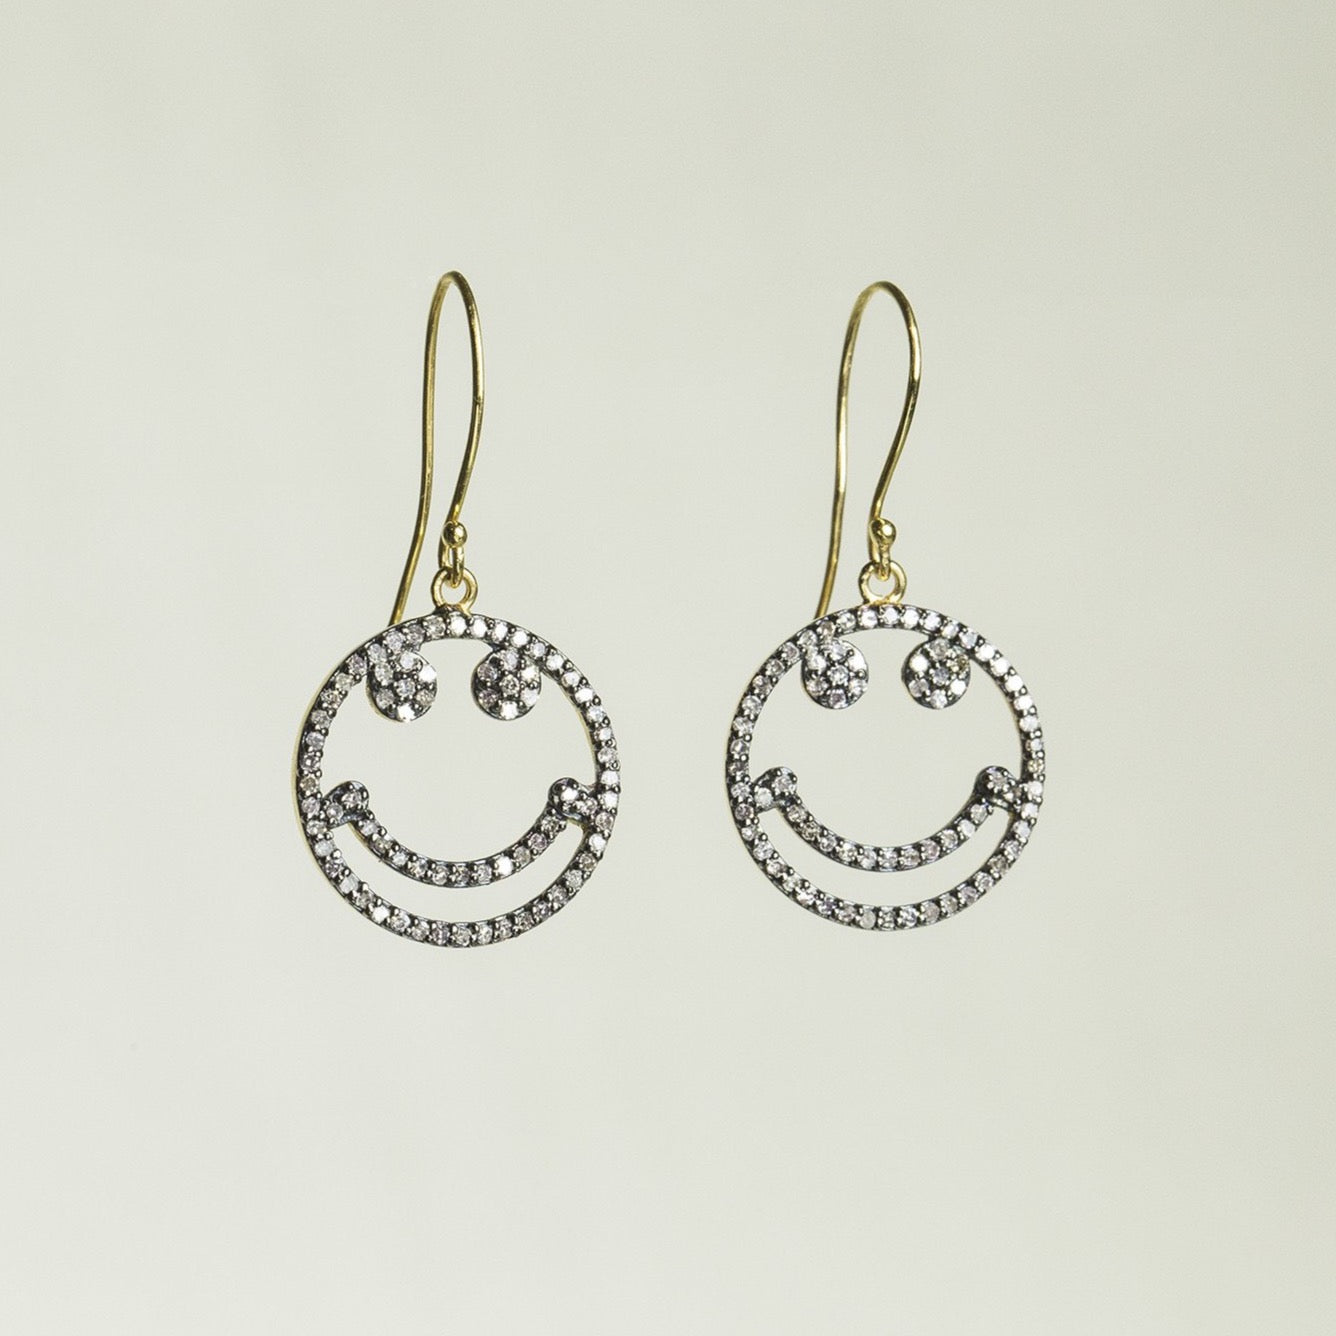 felt Diamond Smiley Face Drop Earrings